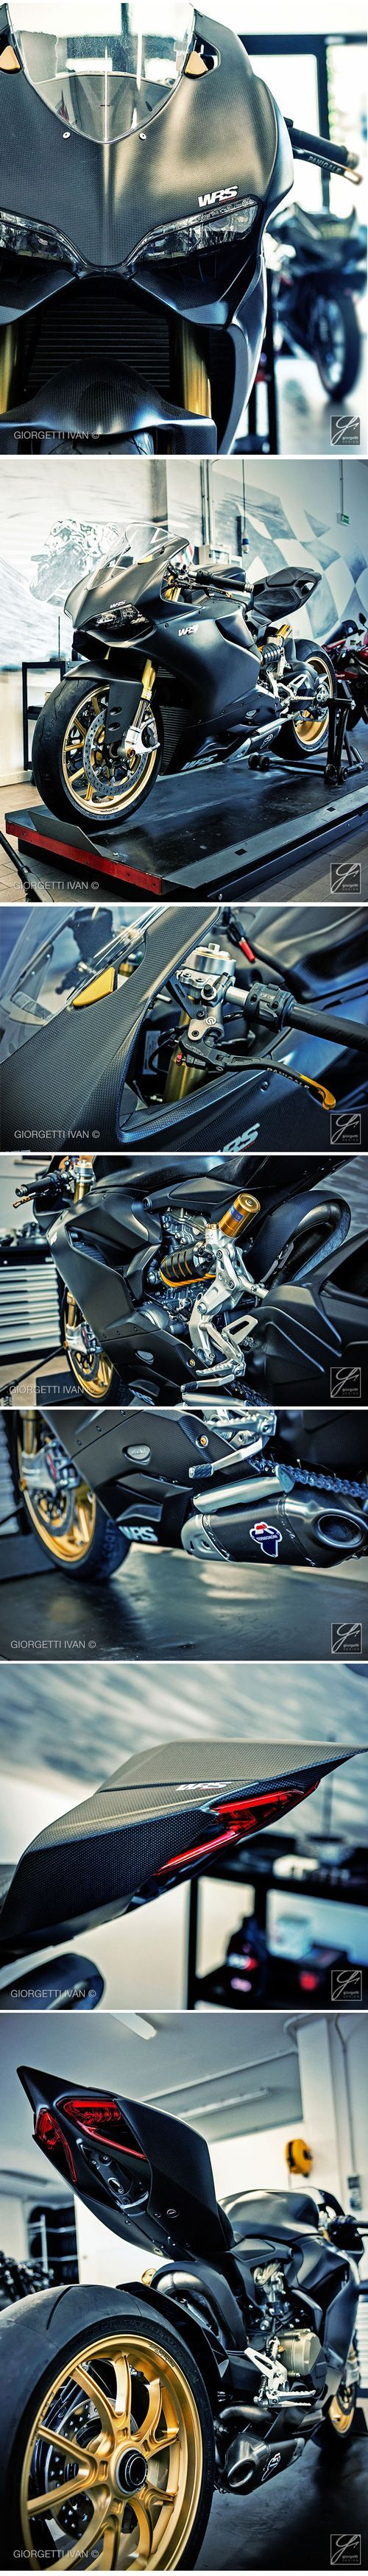 Ducati 1199 Full Carbon | #special #motorcycle by WRS evotech / Italy -  | @Ivan Cherevko Giorgetti